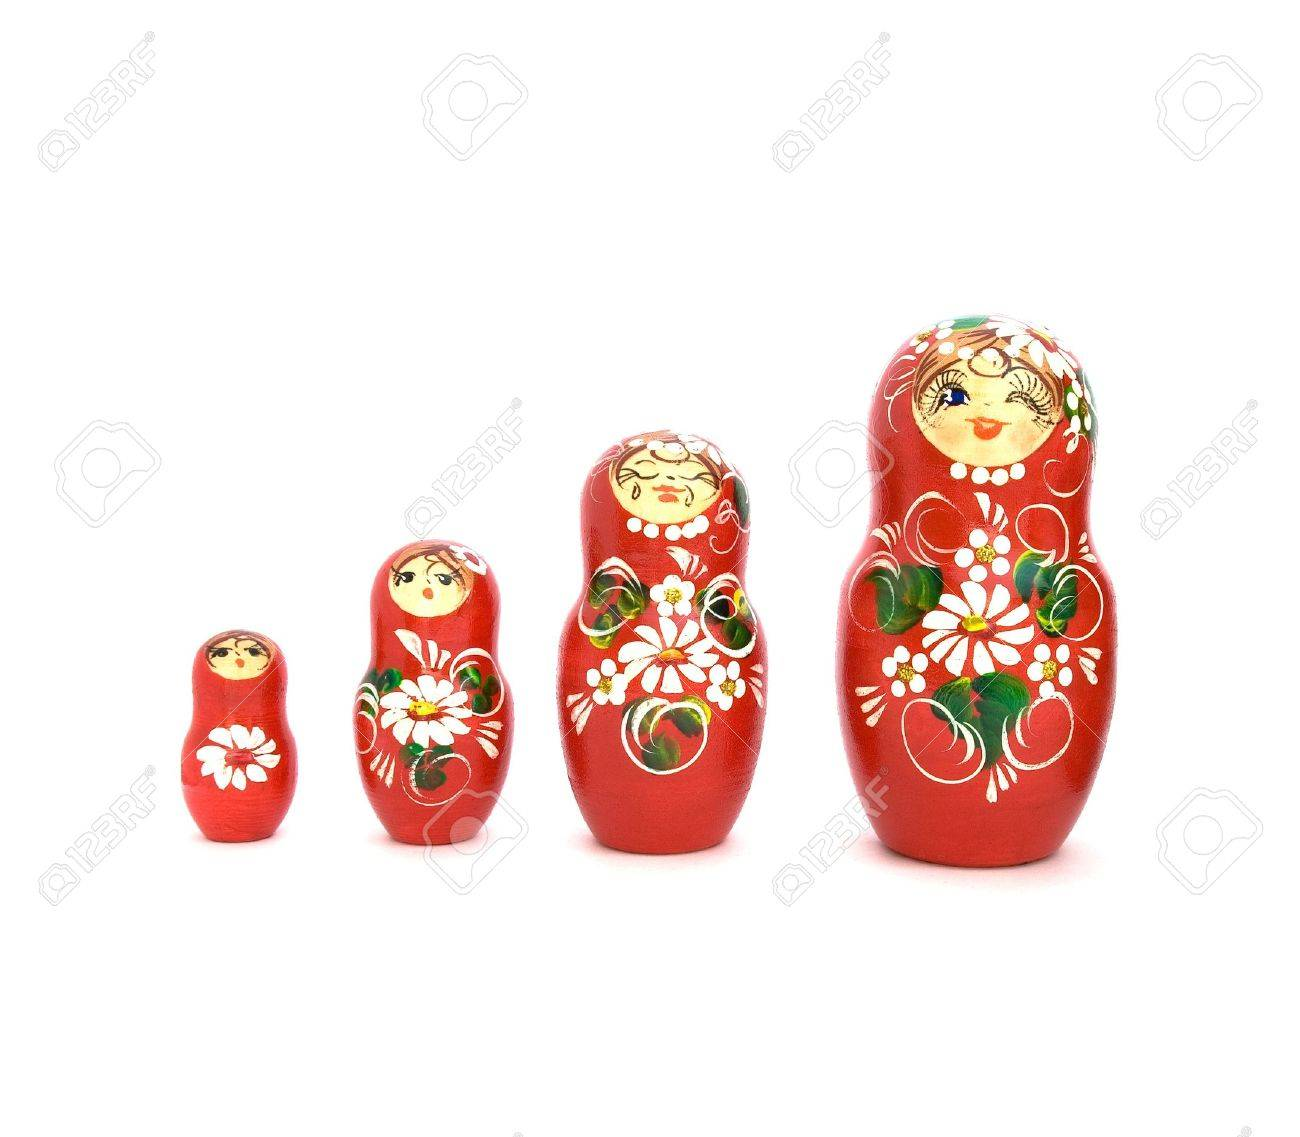 Set of four russian dolls of increasing sizes. Stock Photo - 6233084